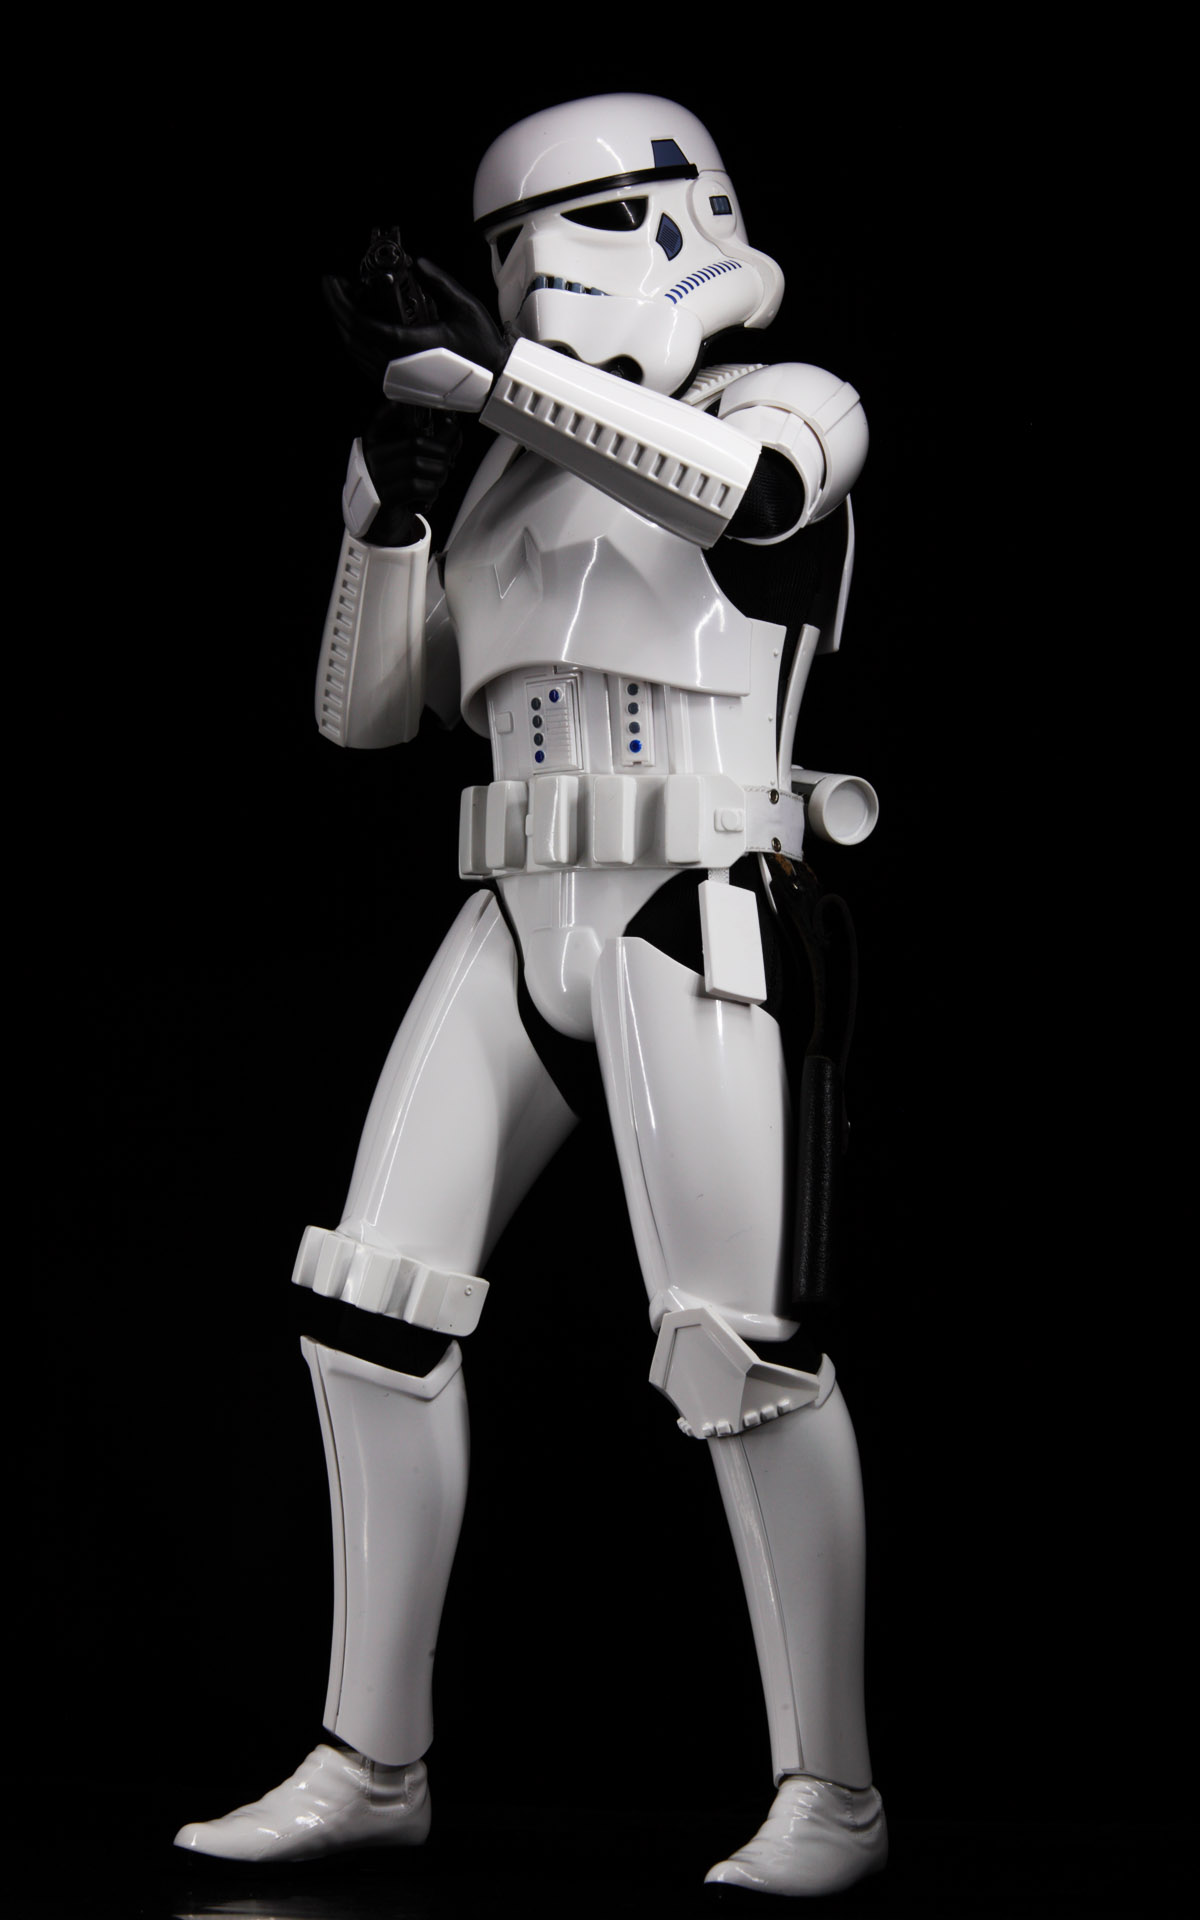 hottoys-star-wars-episode-4-a-new-hope-stormtroopers-set-picture08